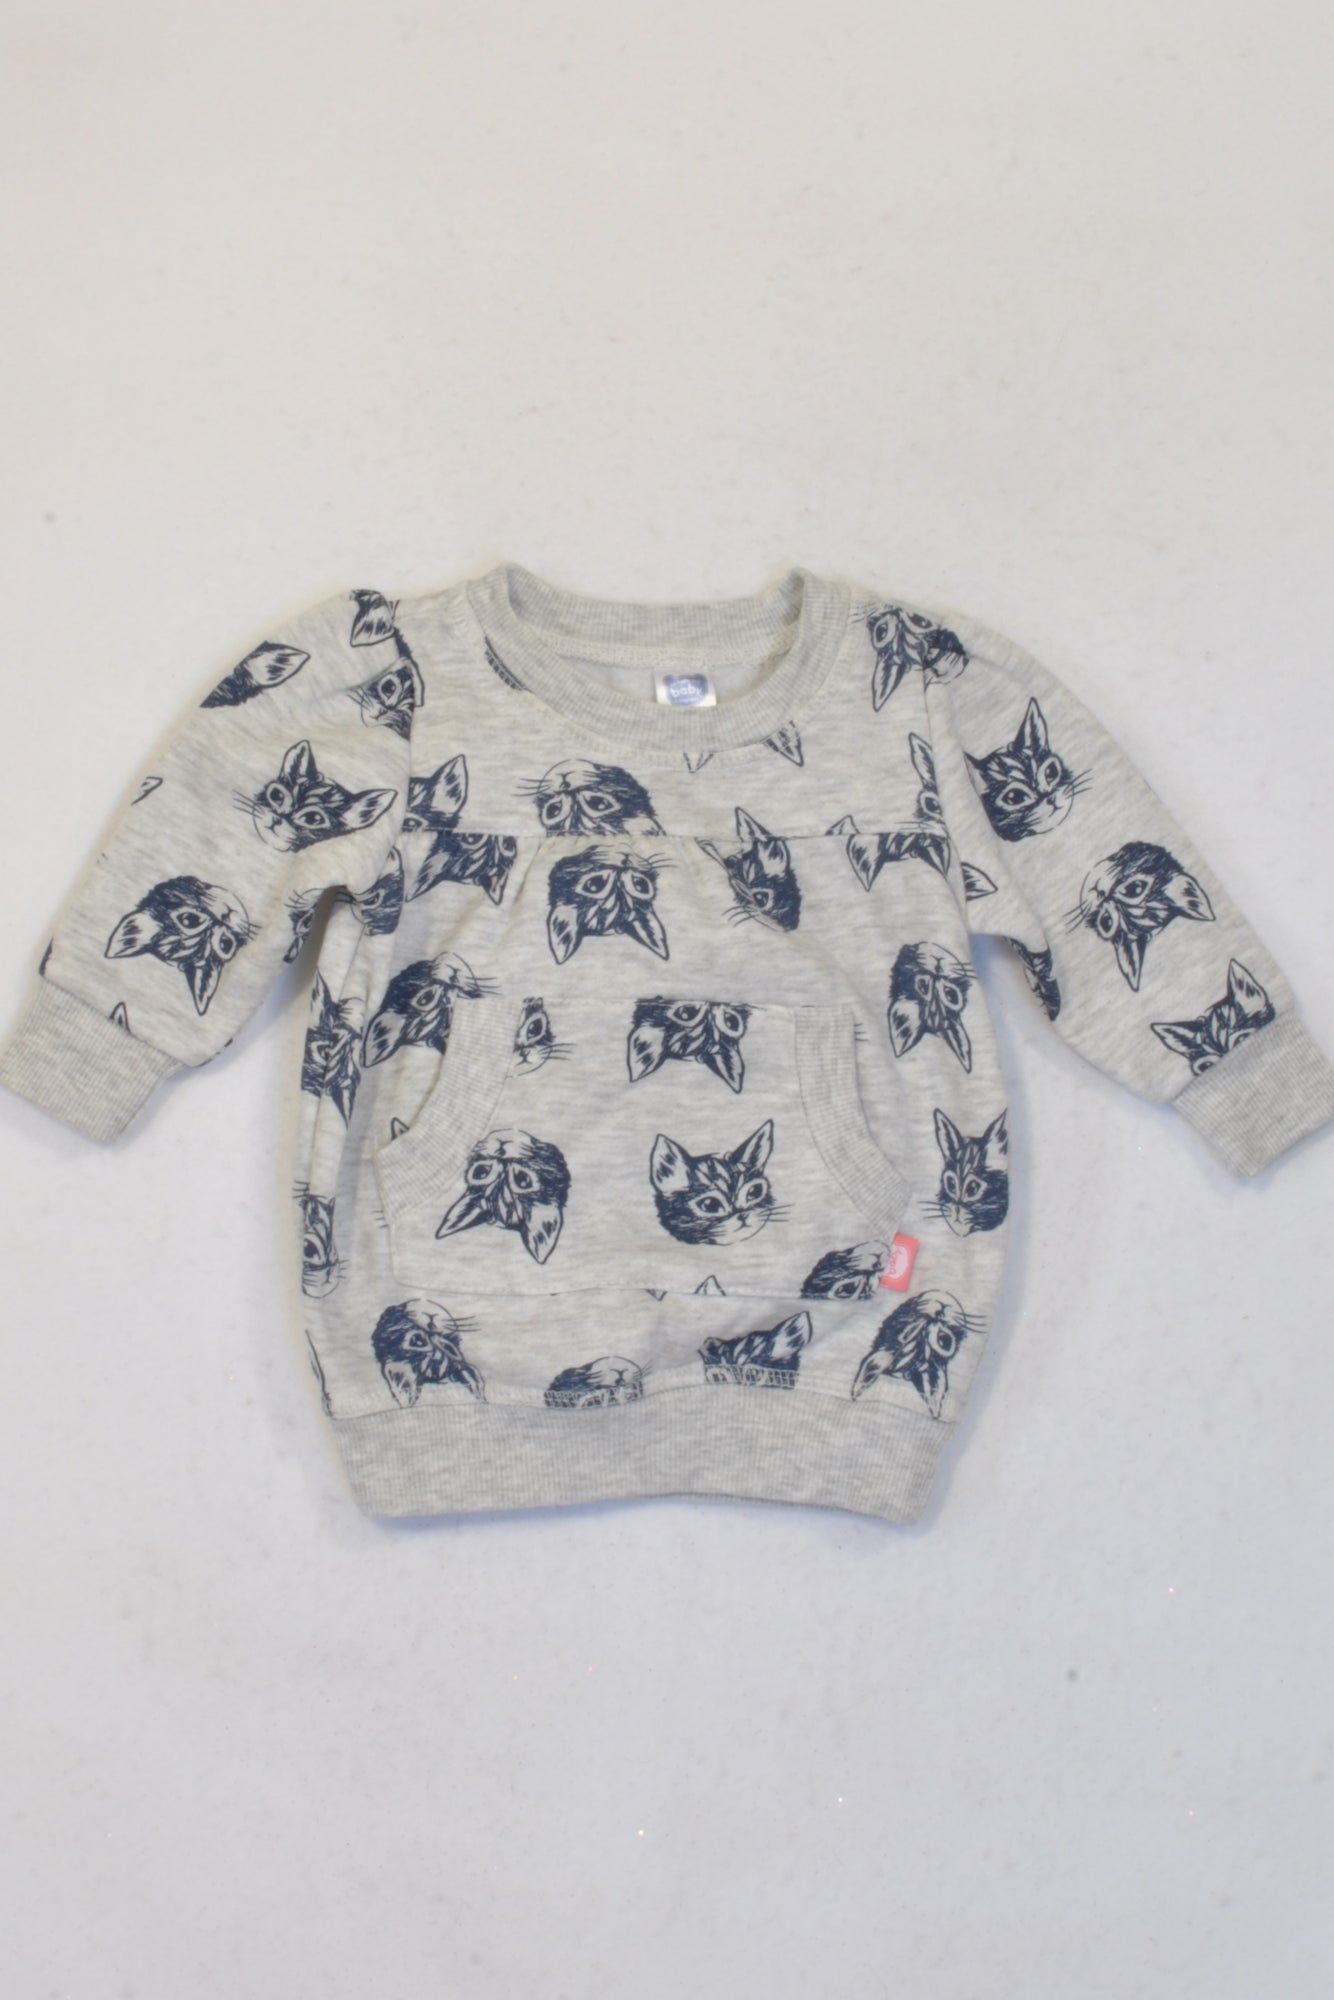 Ackermans Grey & Blue Kitten Jersey Girls 0-3 months